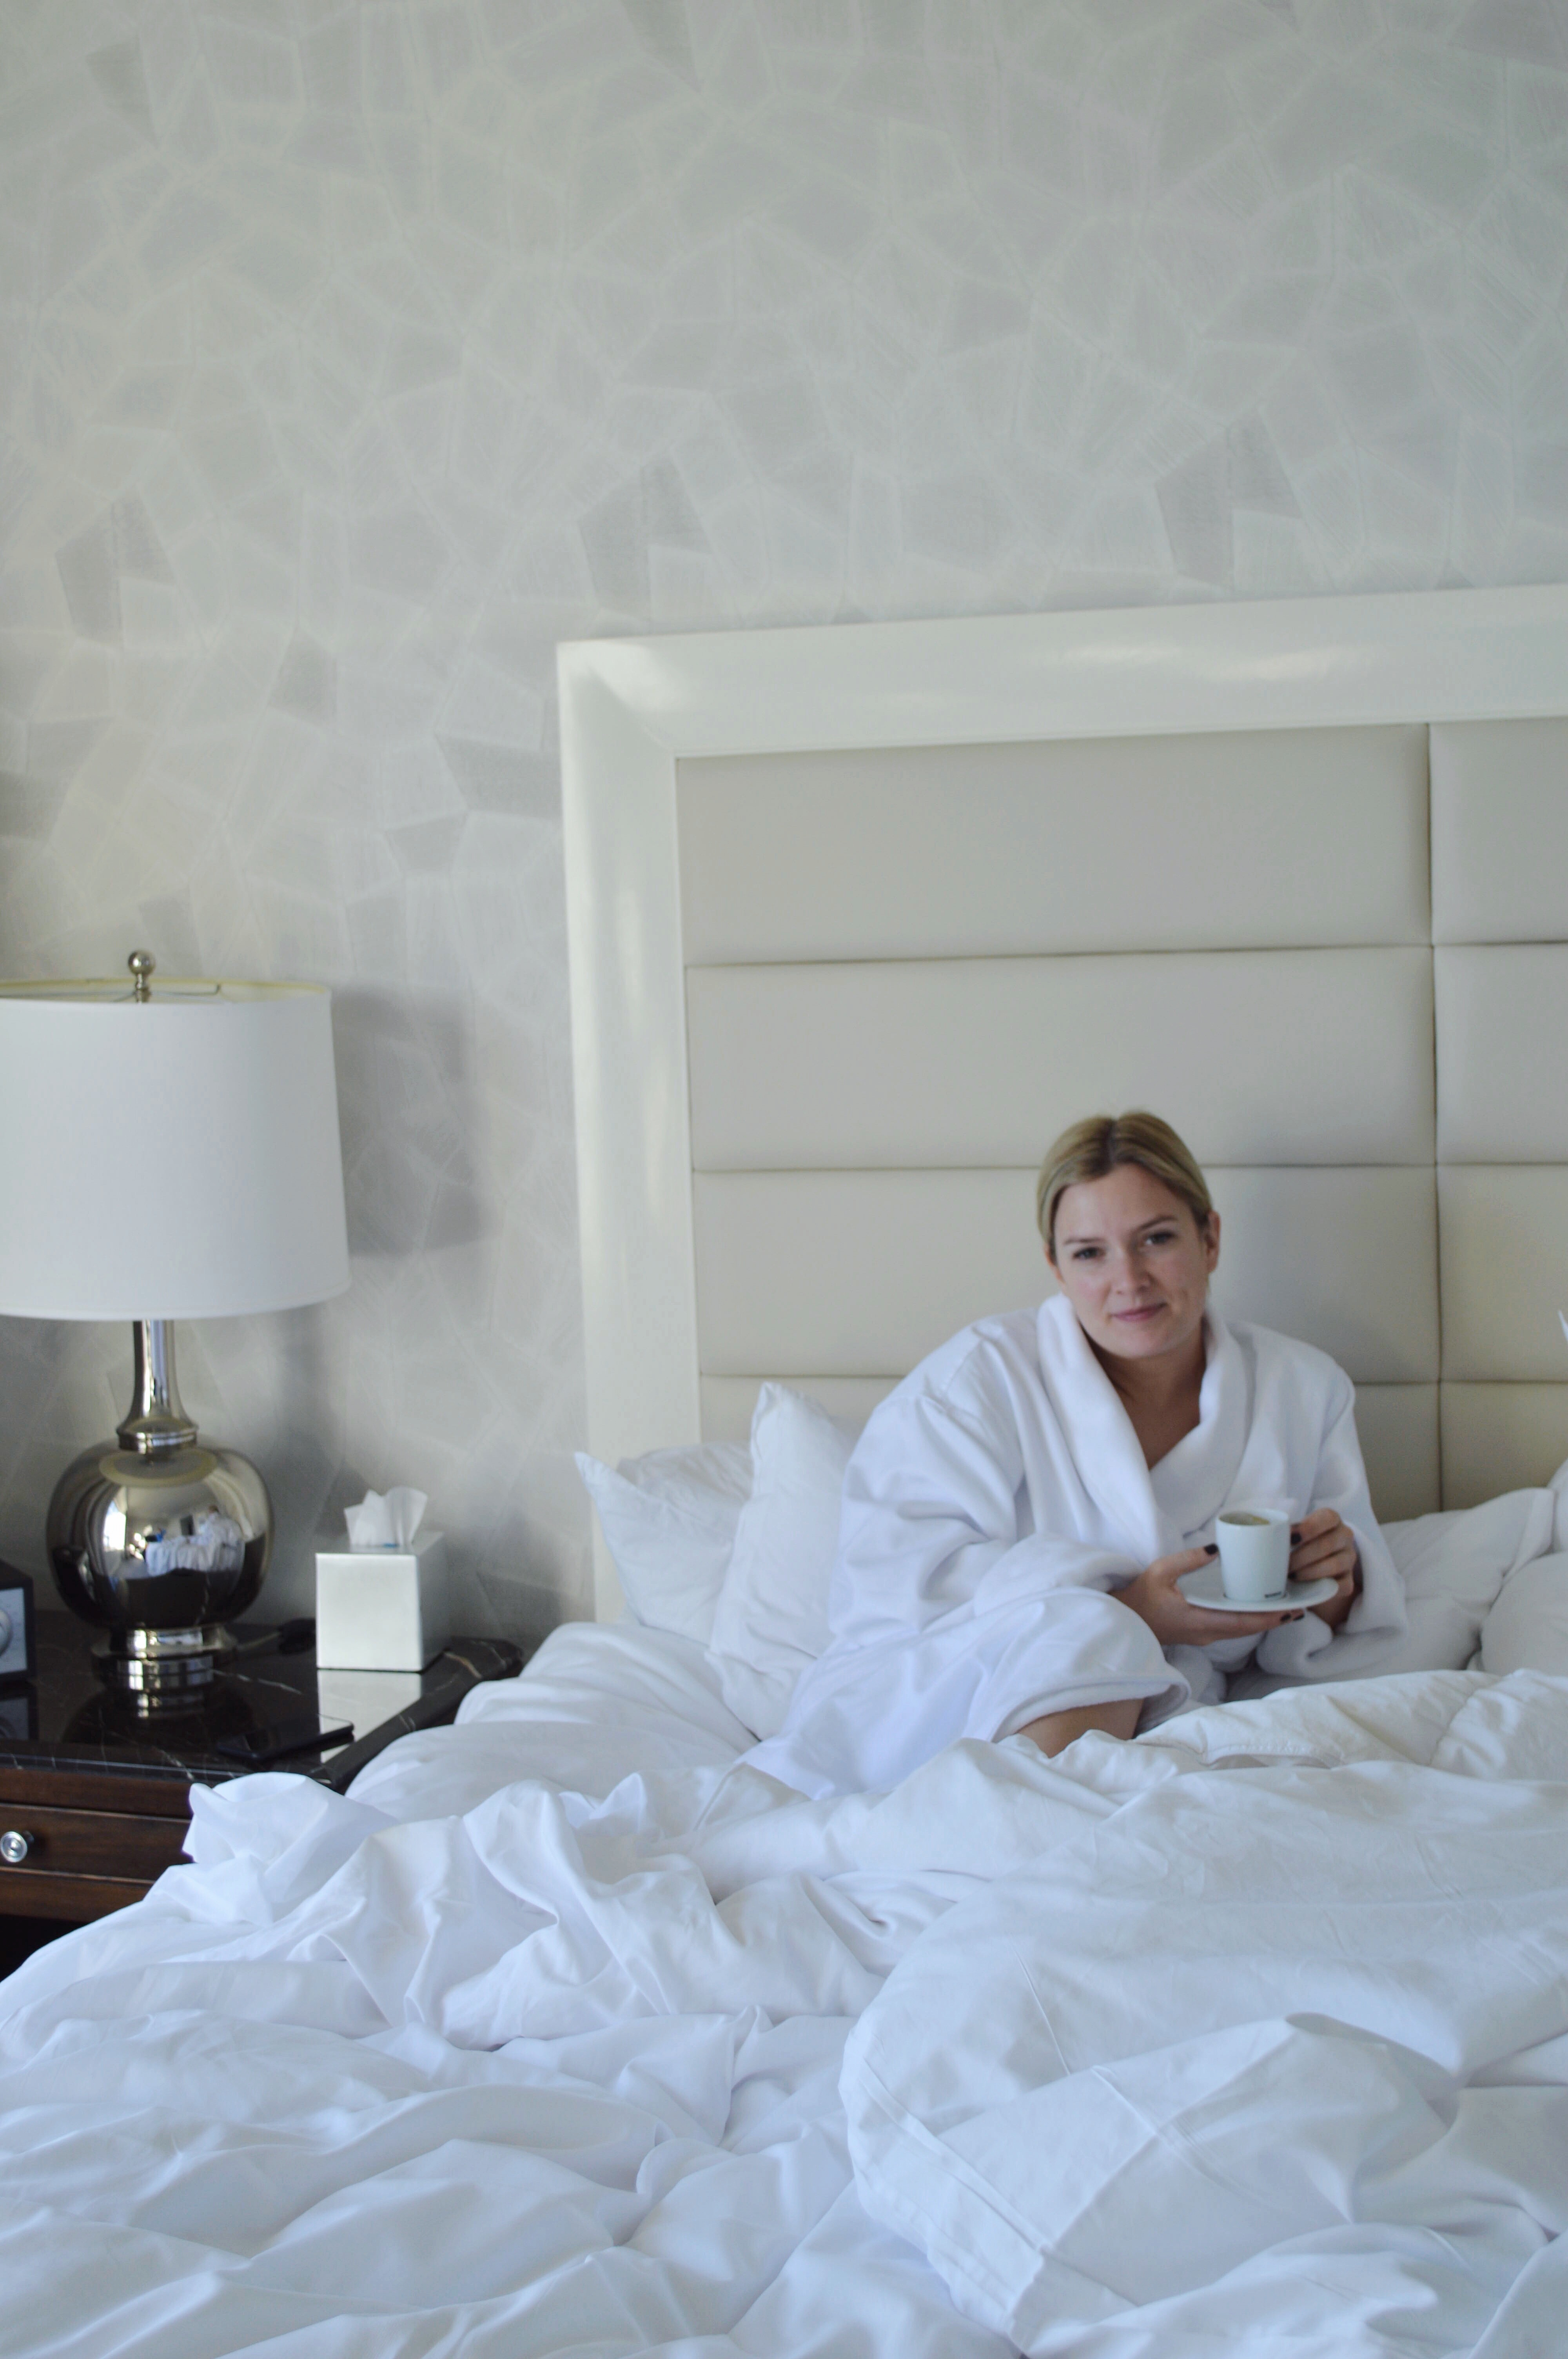 The Ritz Carlton Staycation